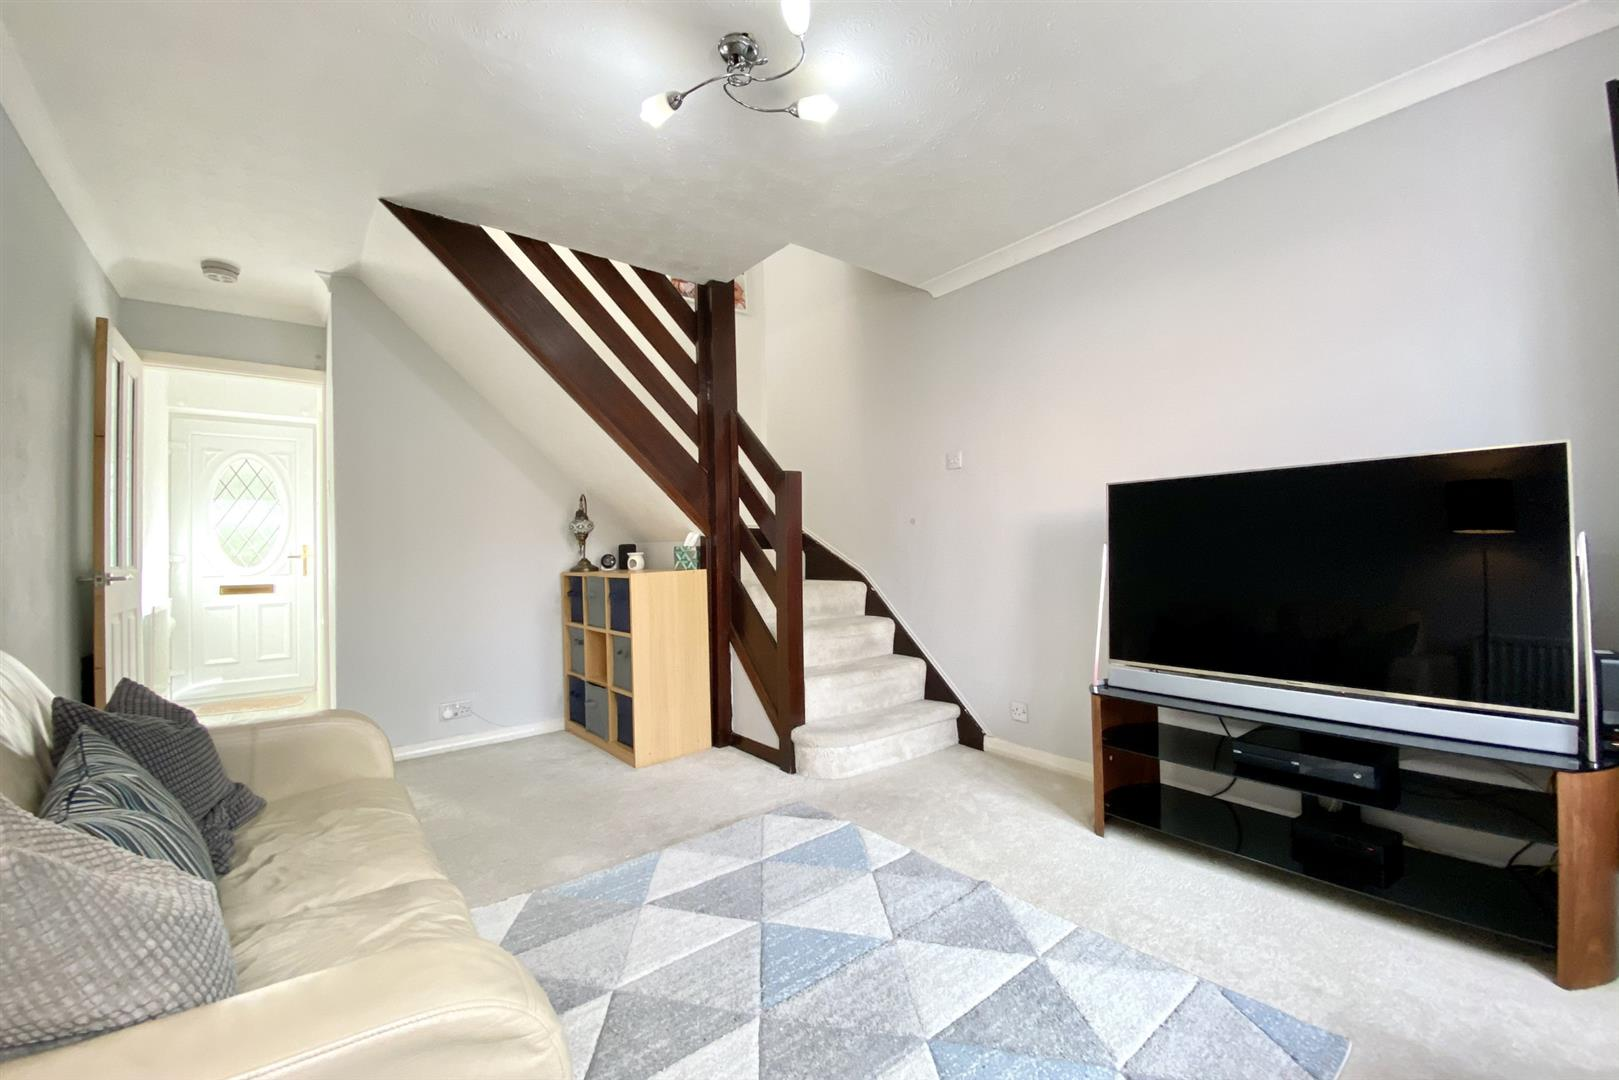 1 bed terraced for sale - Property Image 1